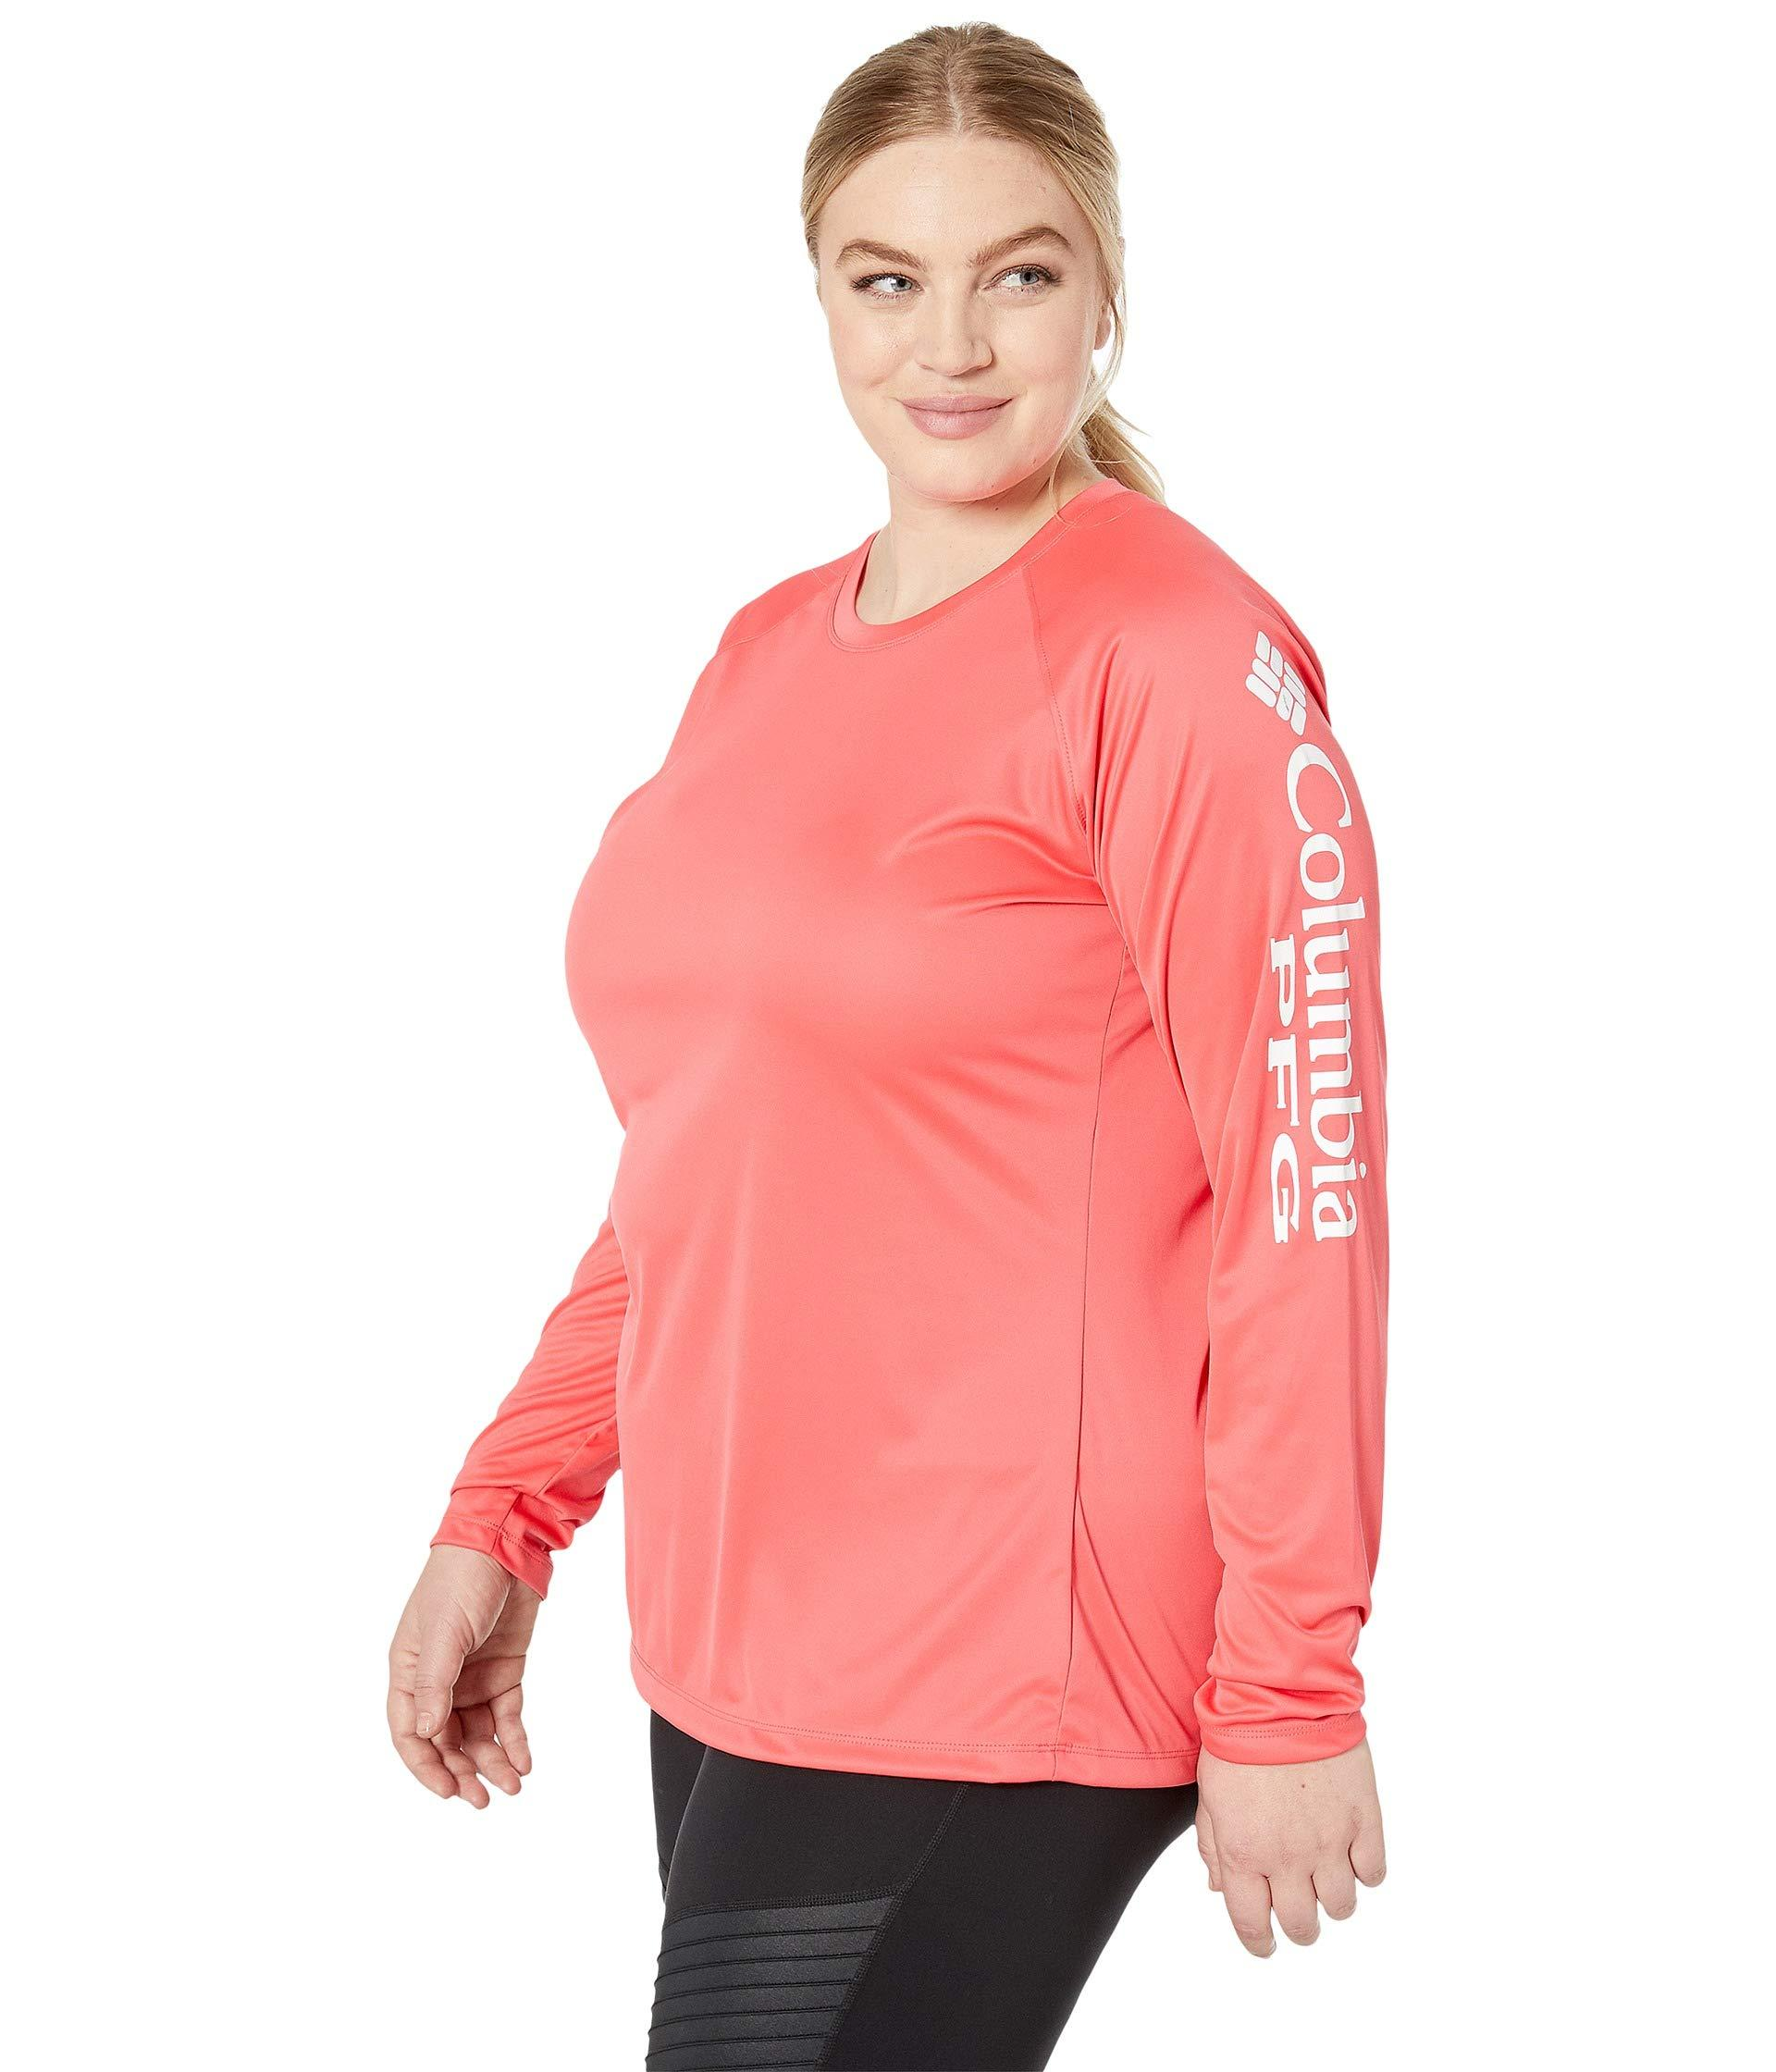 d63ae5ea4762f Lyst - Columbia Plus Size Tidal Teetm Ii Long Sleeve Shirt (bright Geranium  white) Women s Long Sleeve Pullover in Pink